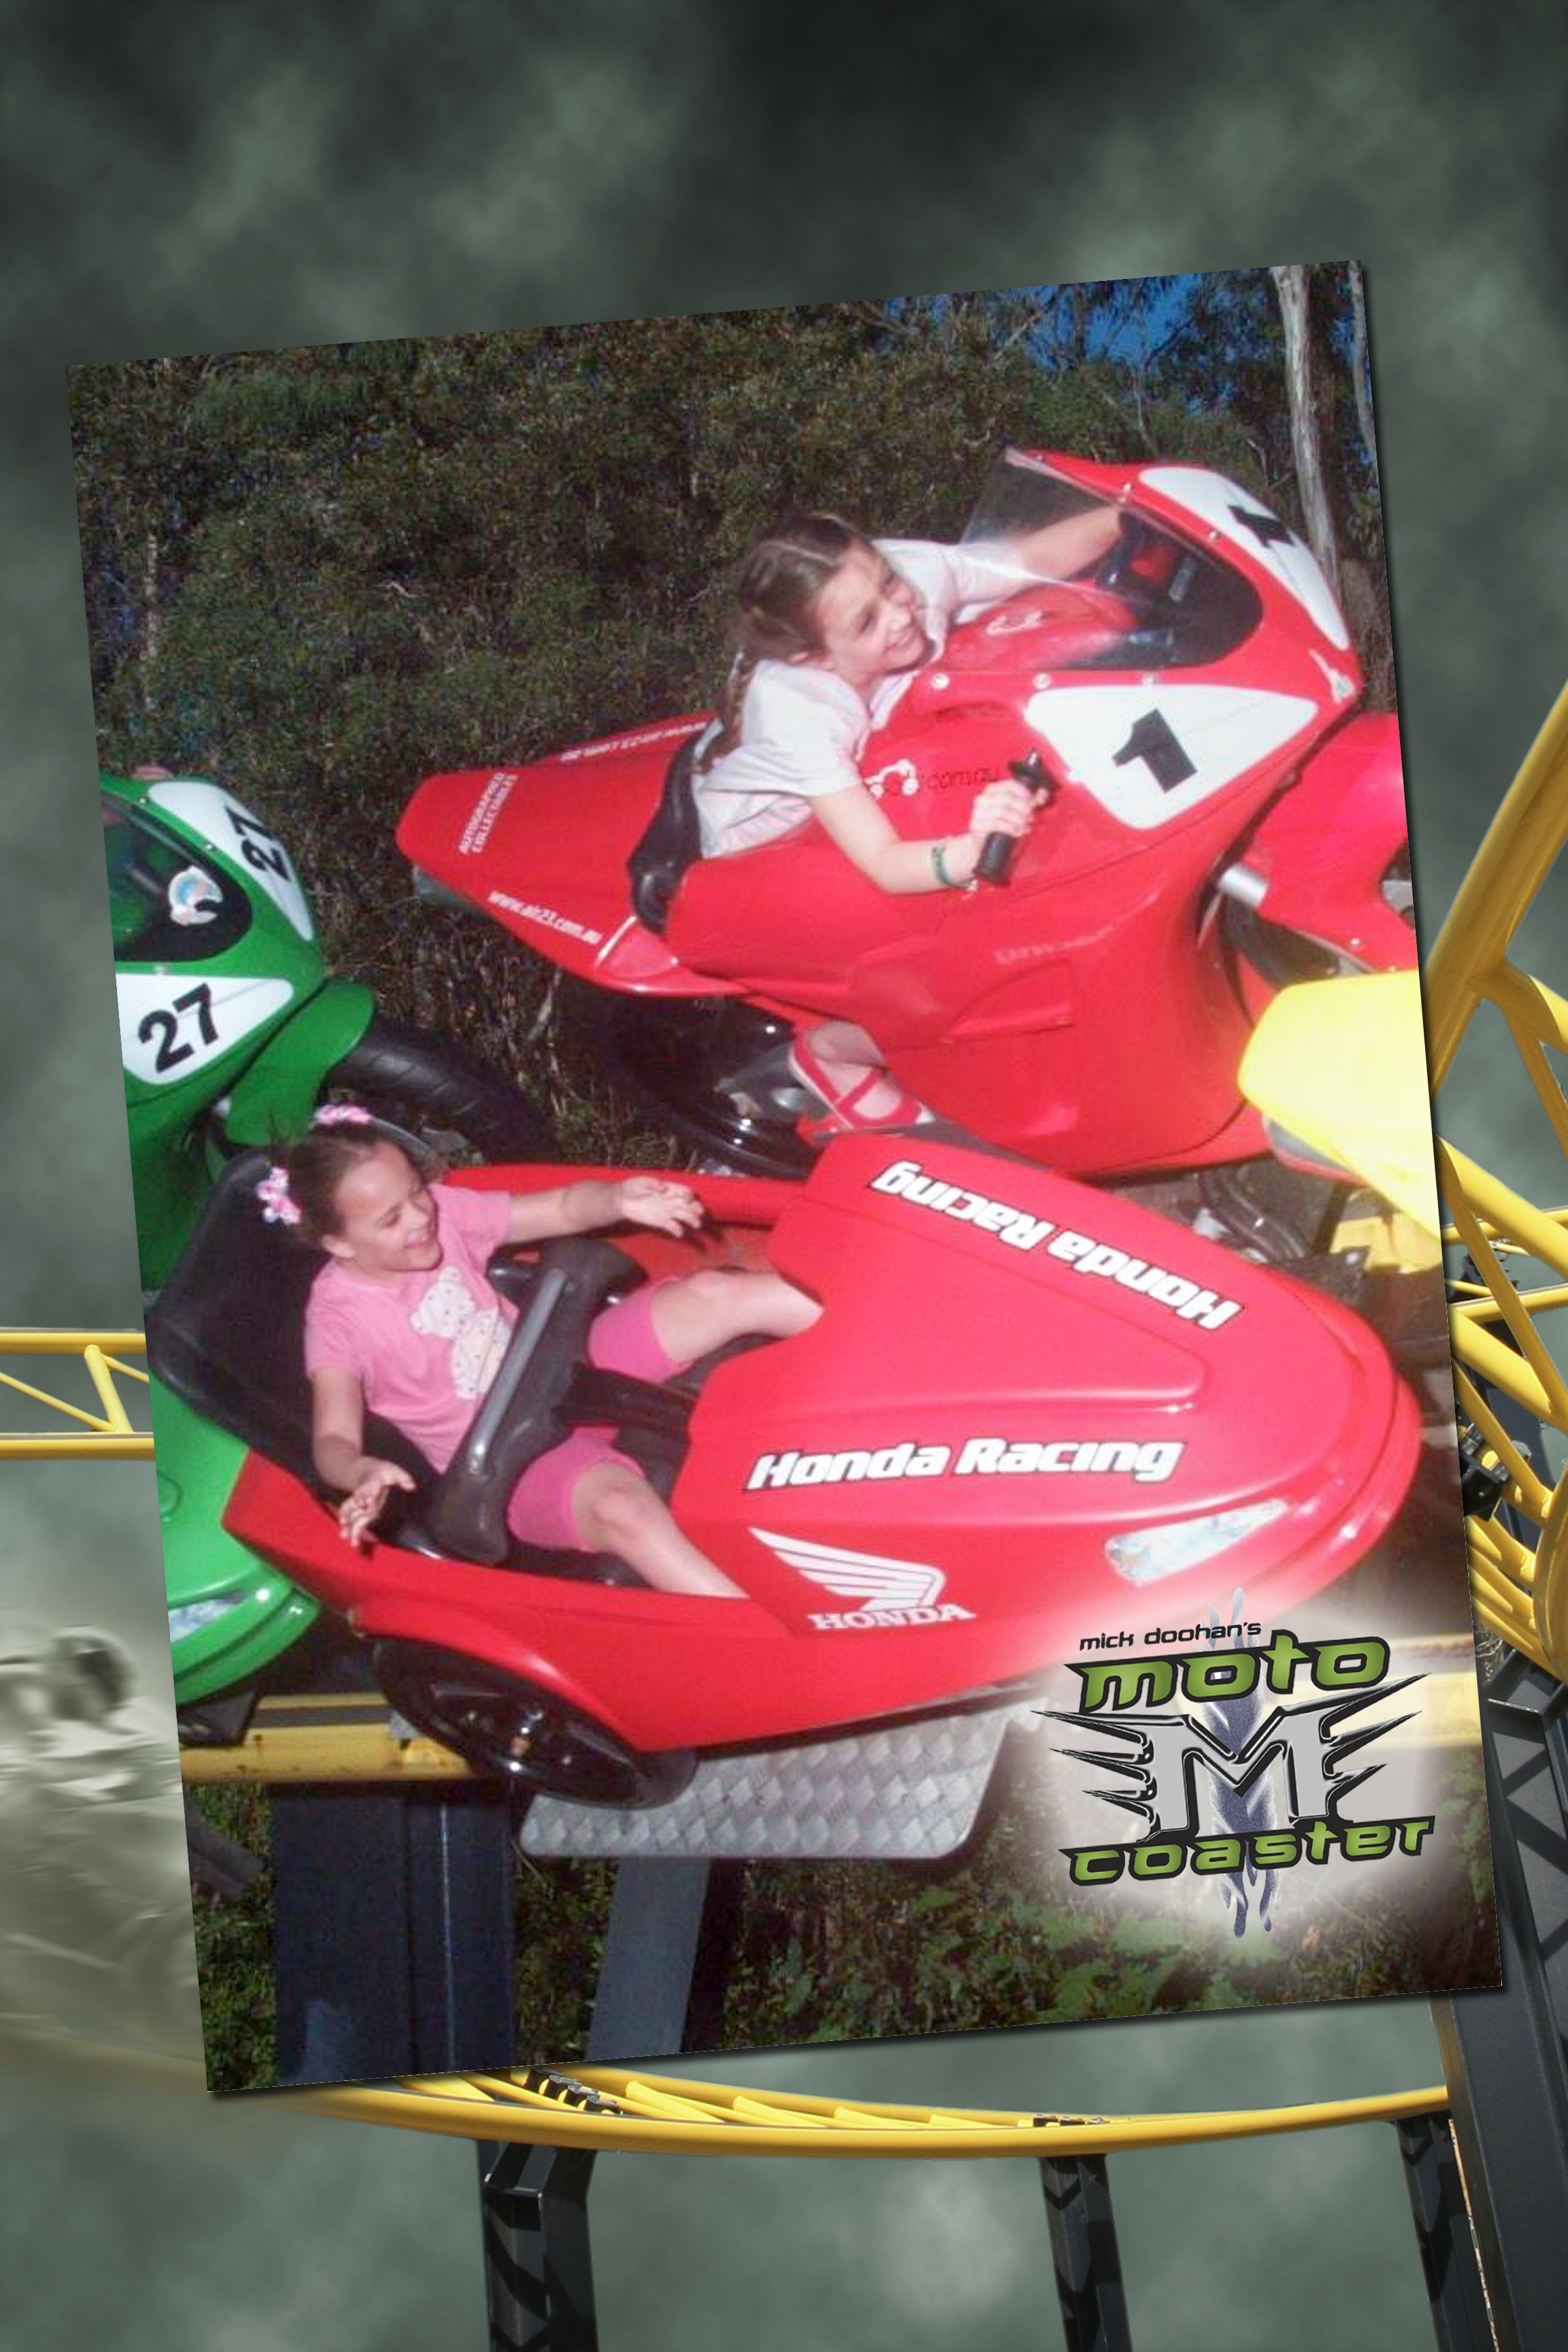 Sister act - the girls adored the rocket-fast Mick Doohan Motorcycle ride!